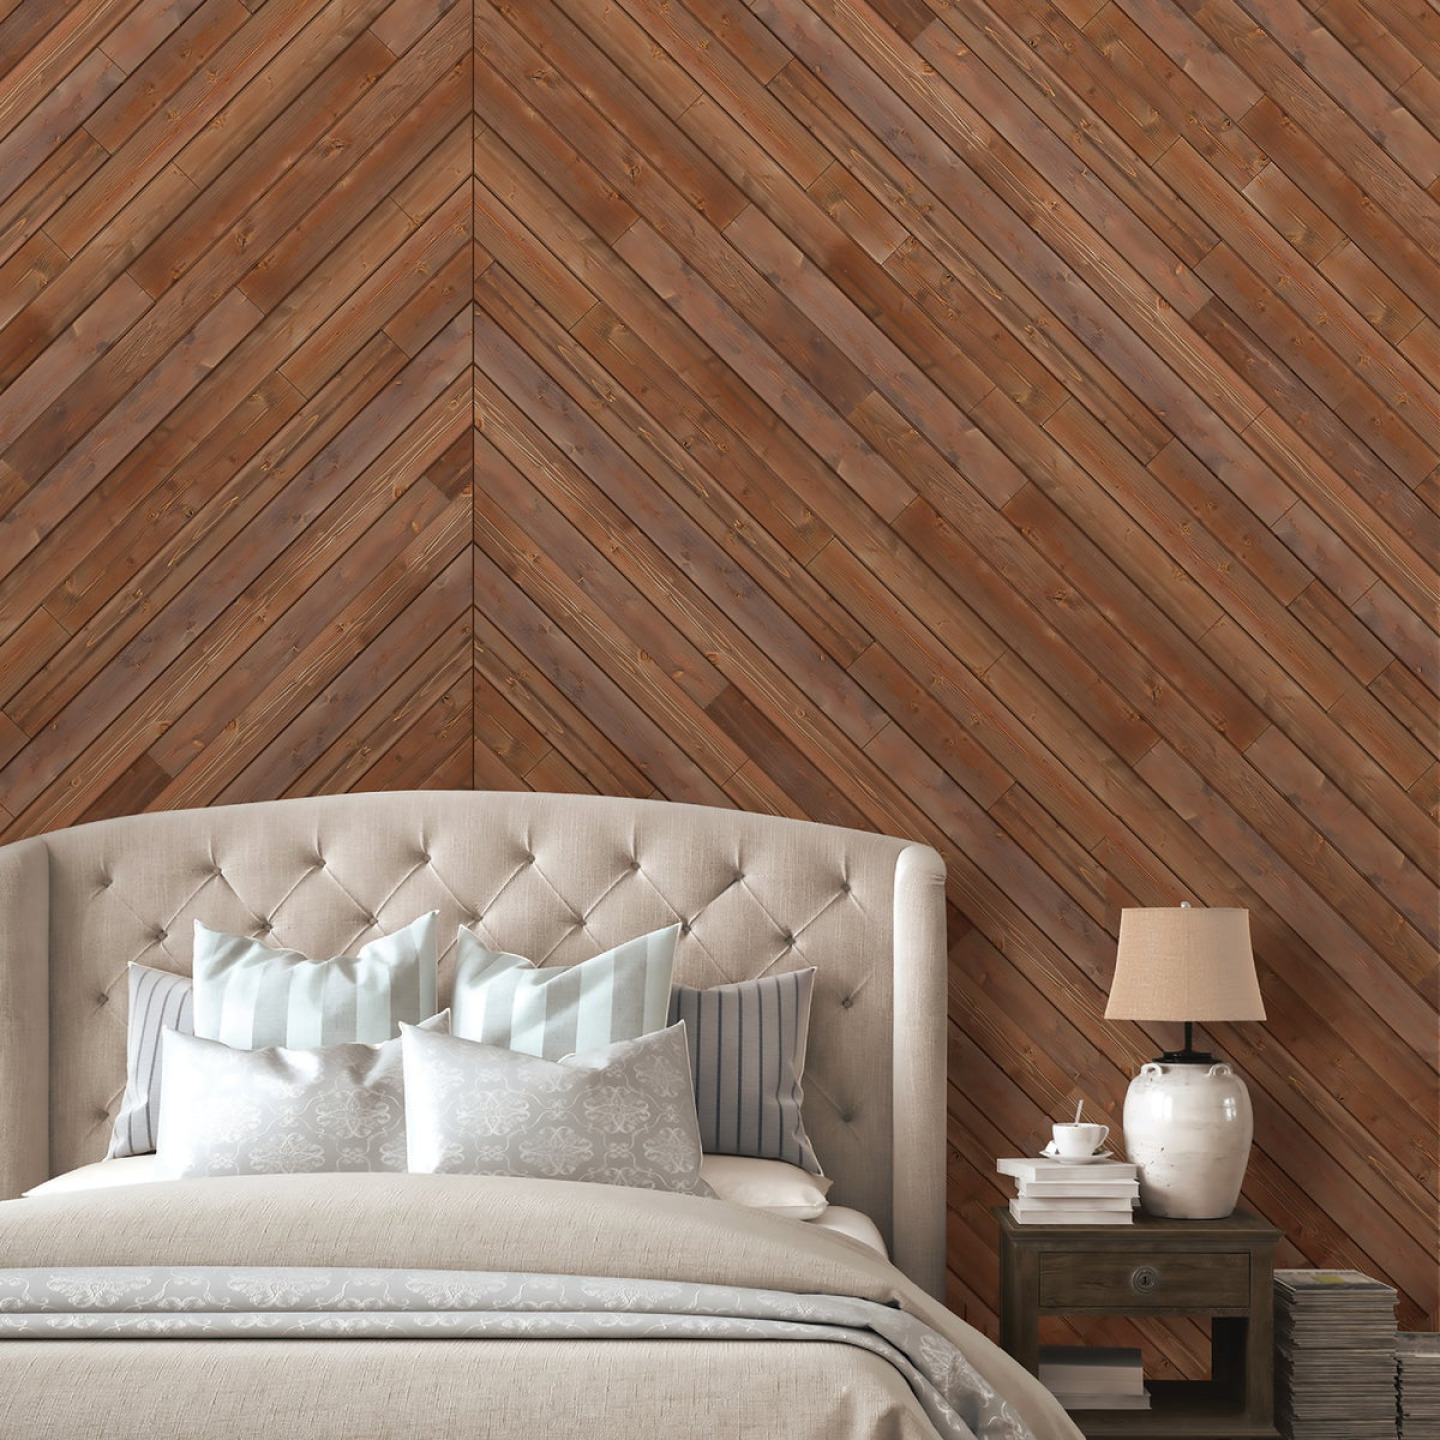 Global Product Sourcing 3-1/2 In. W. x 1/4 In. Thick Solid Wood Brown Reclaimed Wood Wall Plank Image 2